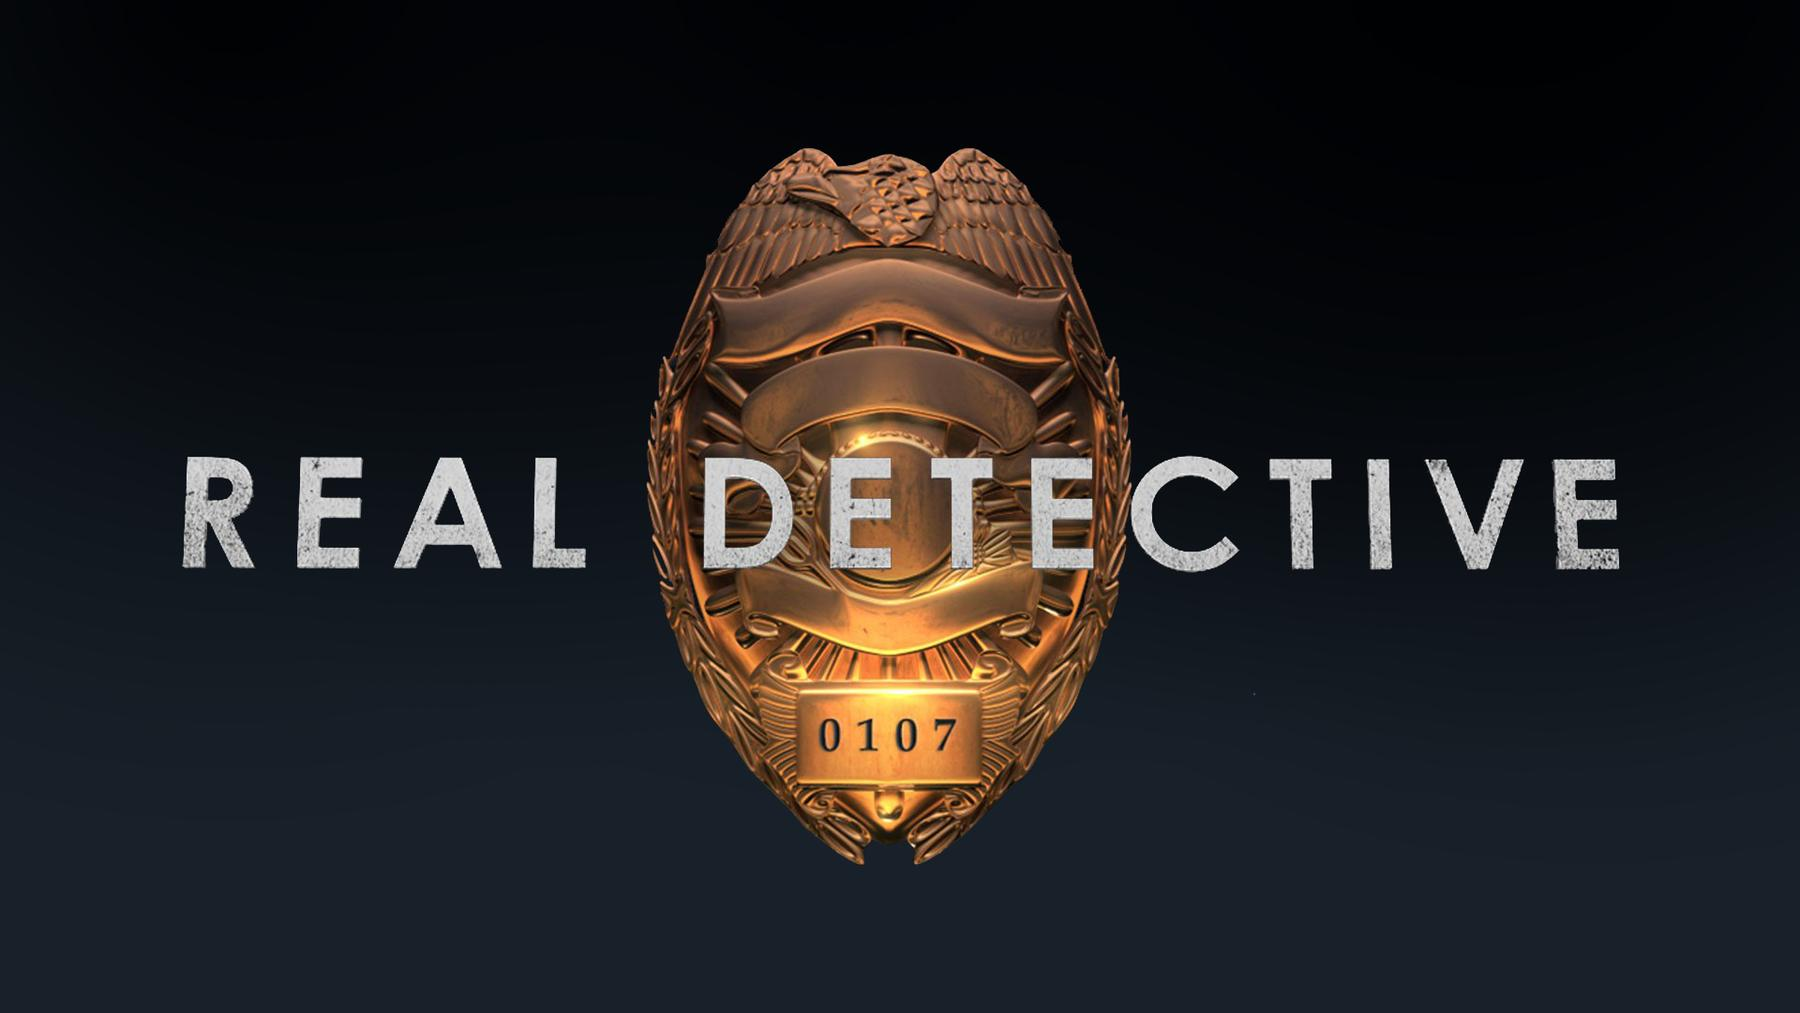 Real Detective